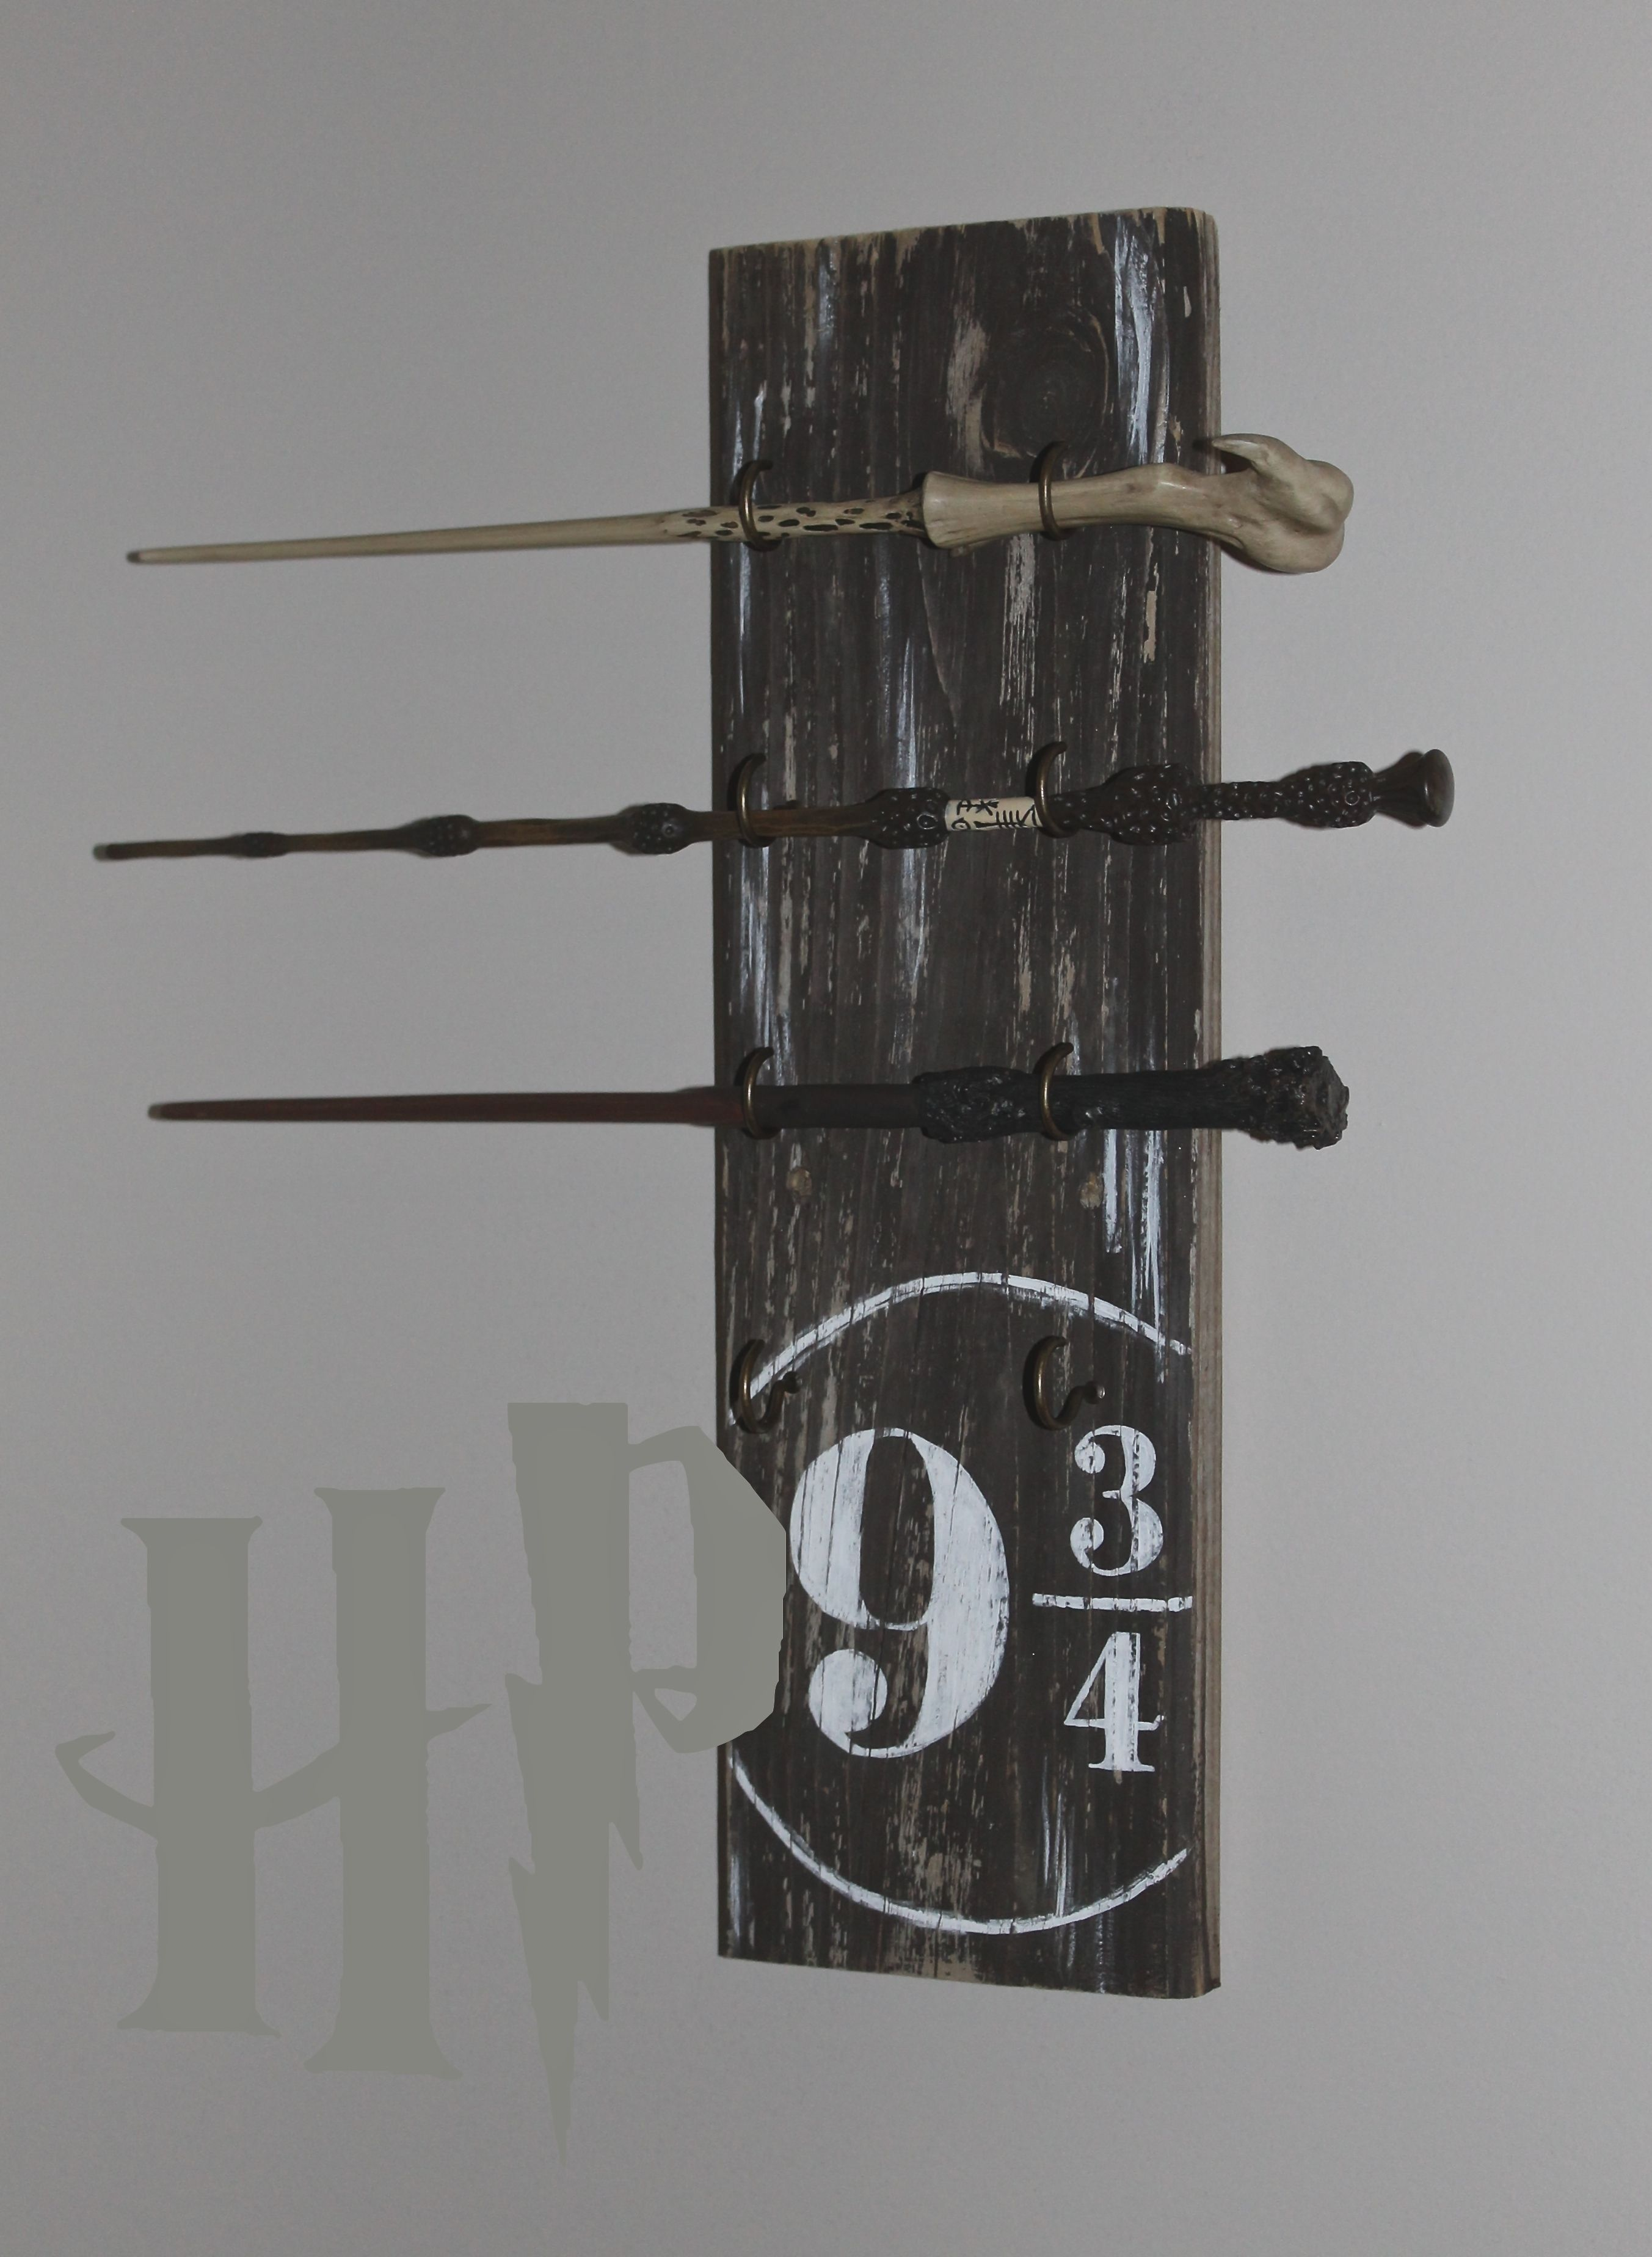 Harry potter wand stand 25 pinterest for Elder wand stand